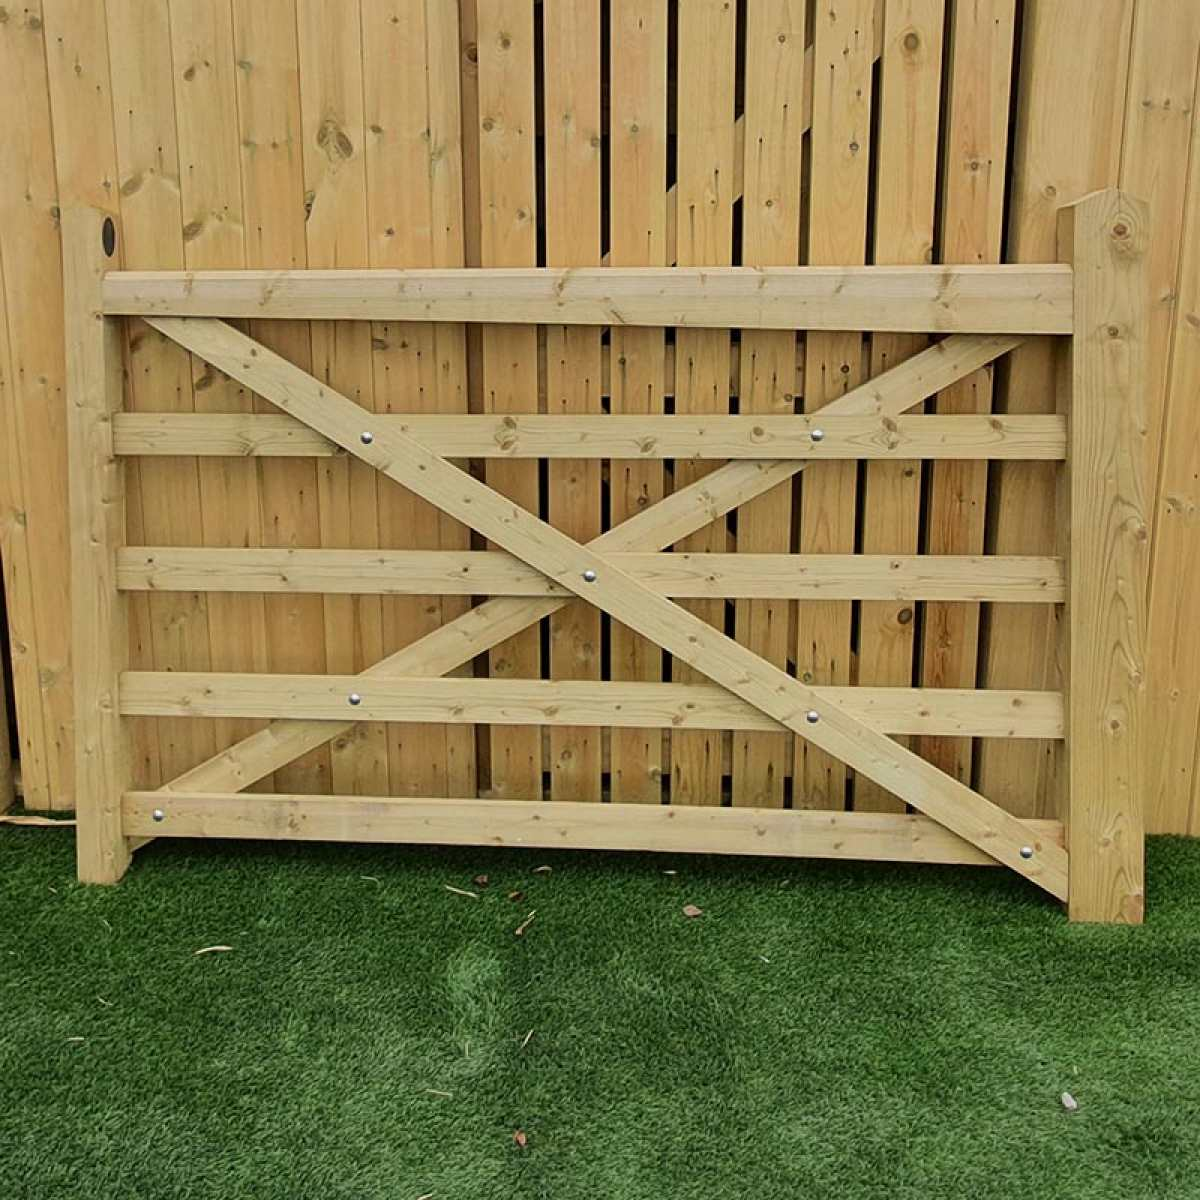 5 bar gates wideversion websterstimber 800px by Image by Websters Timber